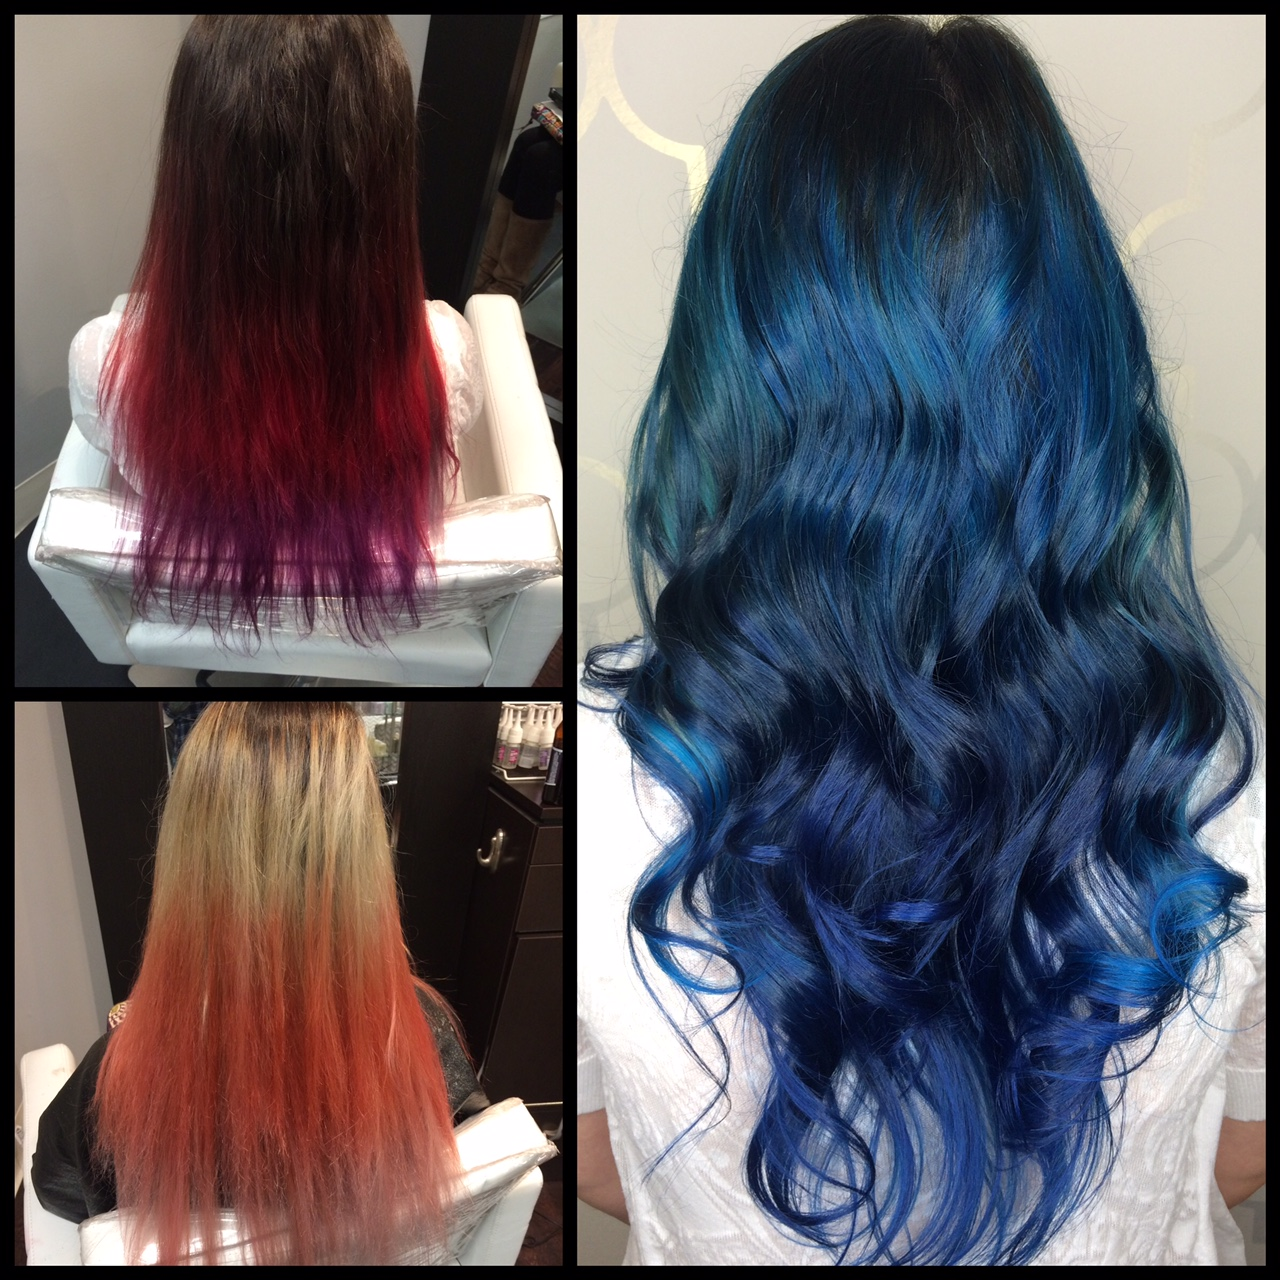 From Pinks and Purples To A Mermaid Bold Blue